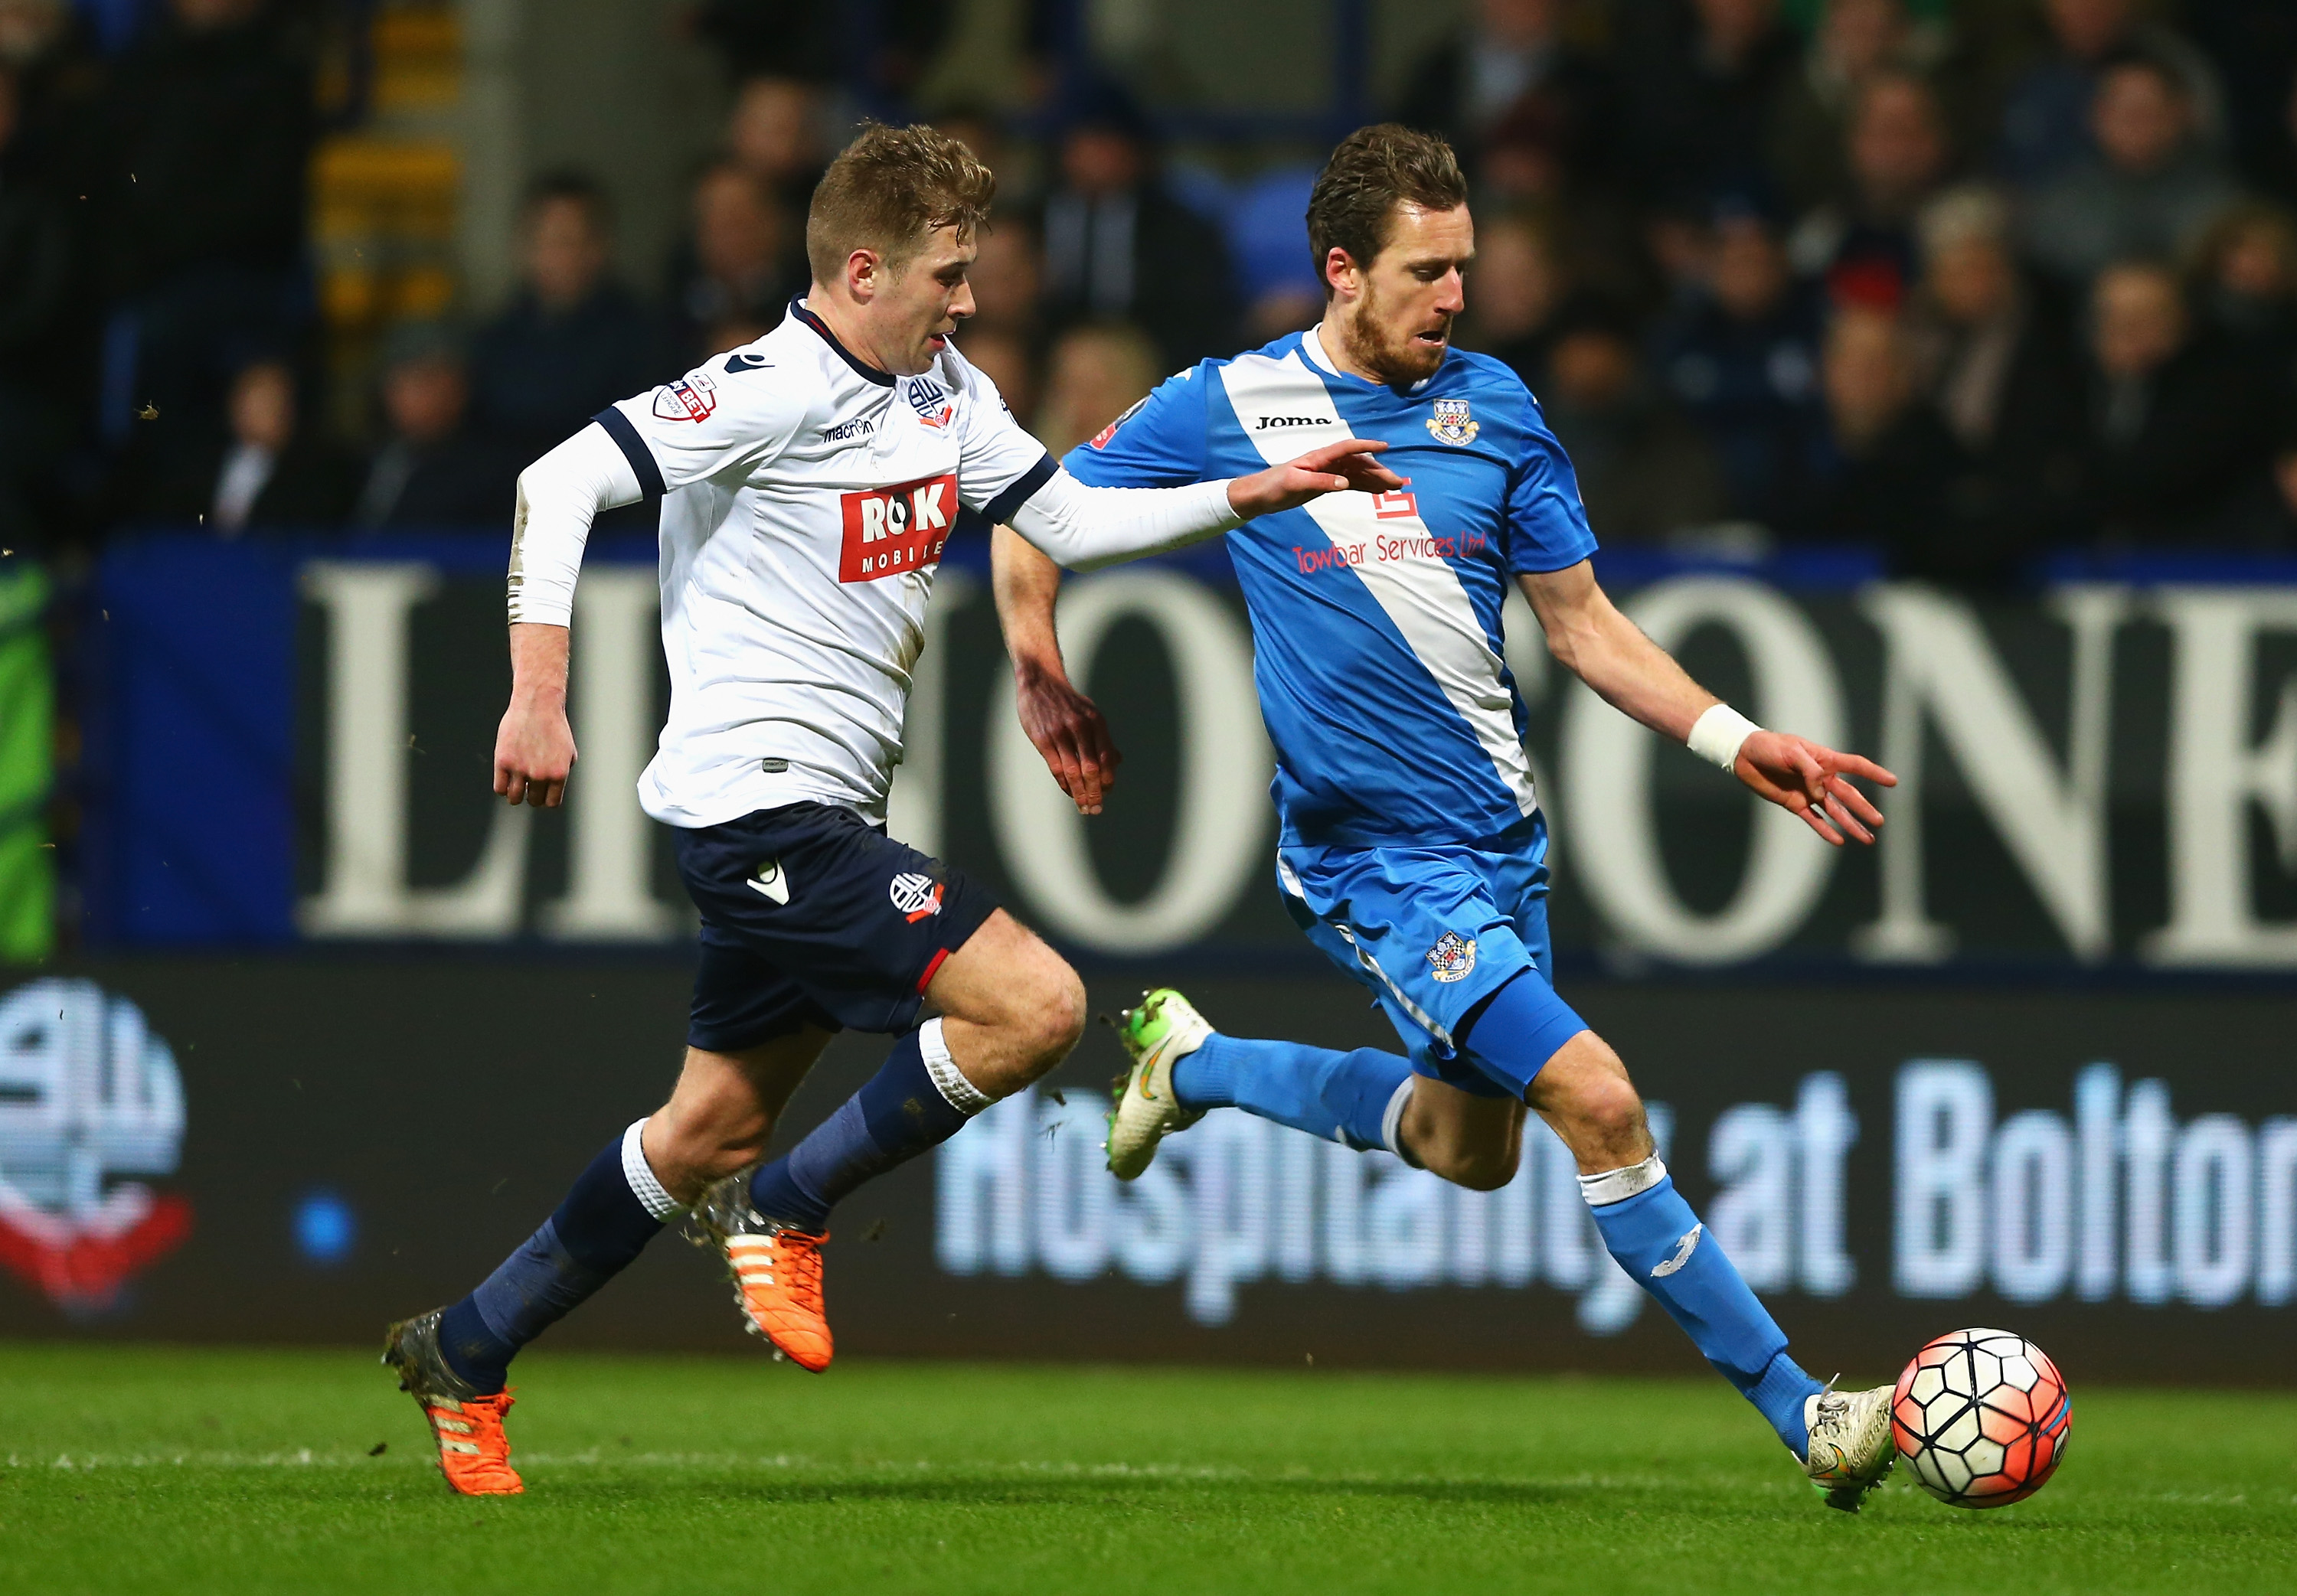 Bolton Wanderers v Eastleigh - The Emirates FA Cup Third Round Replay